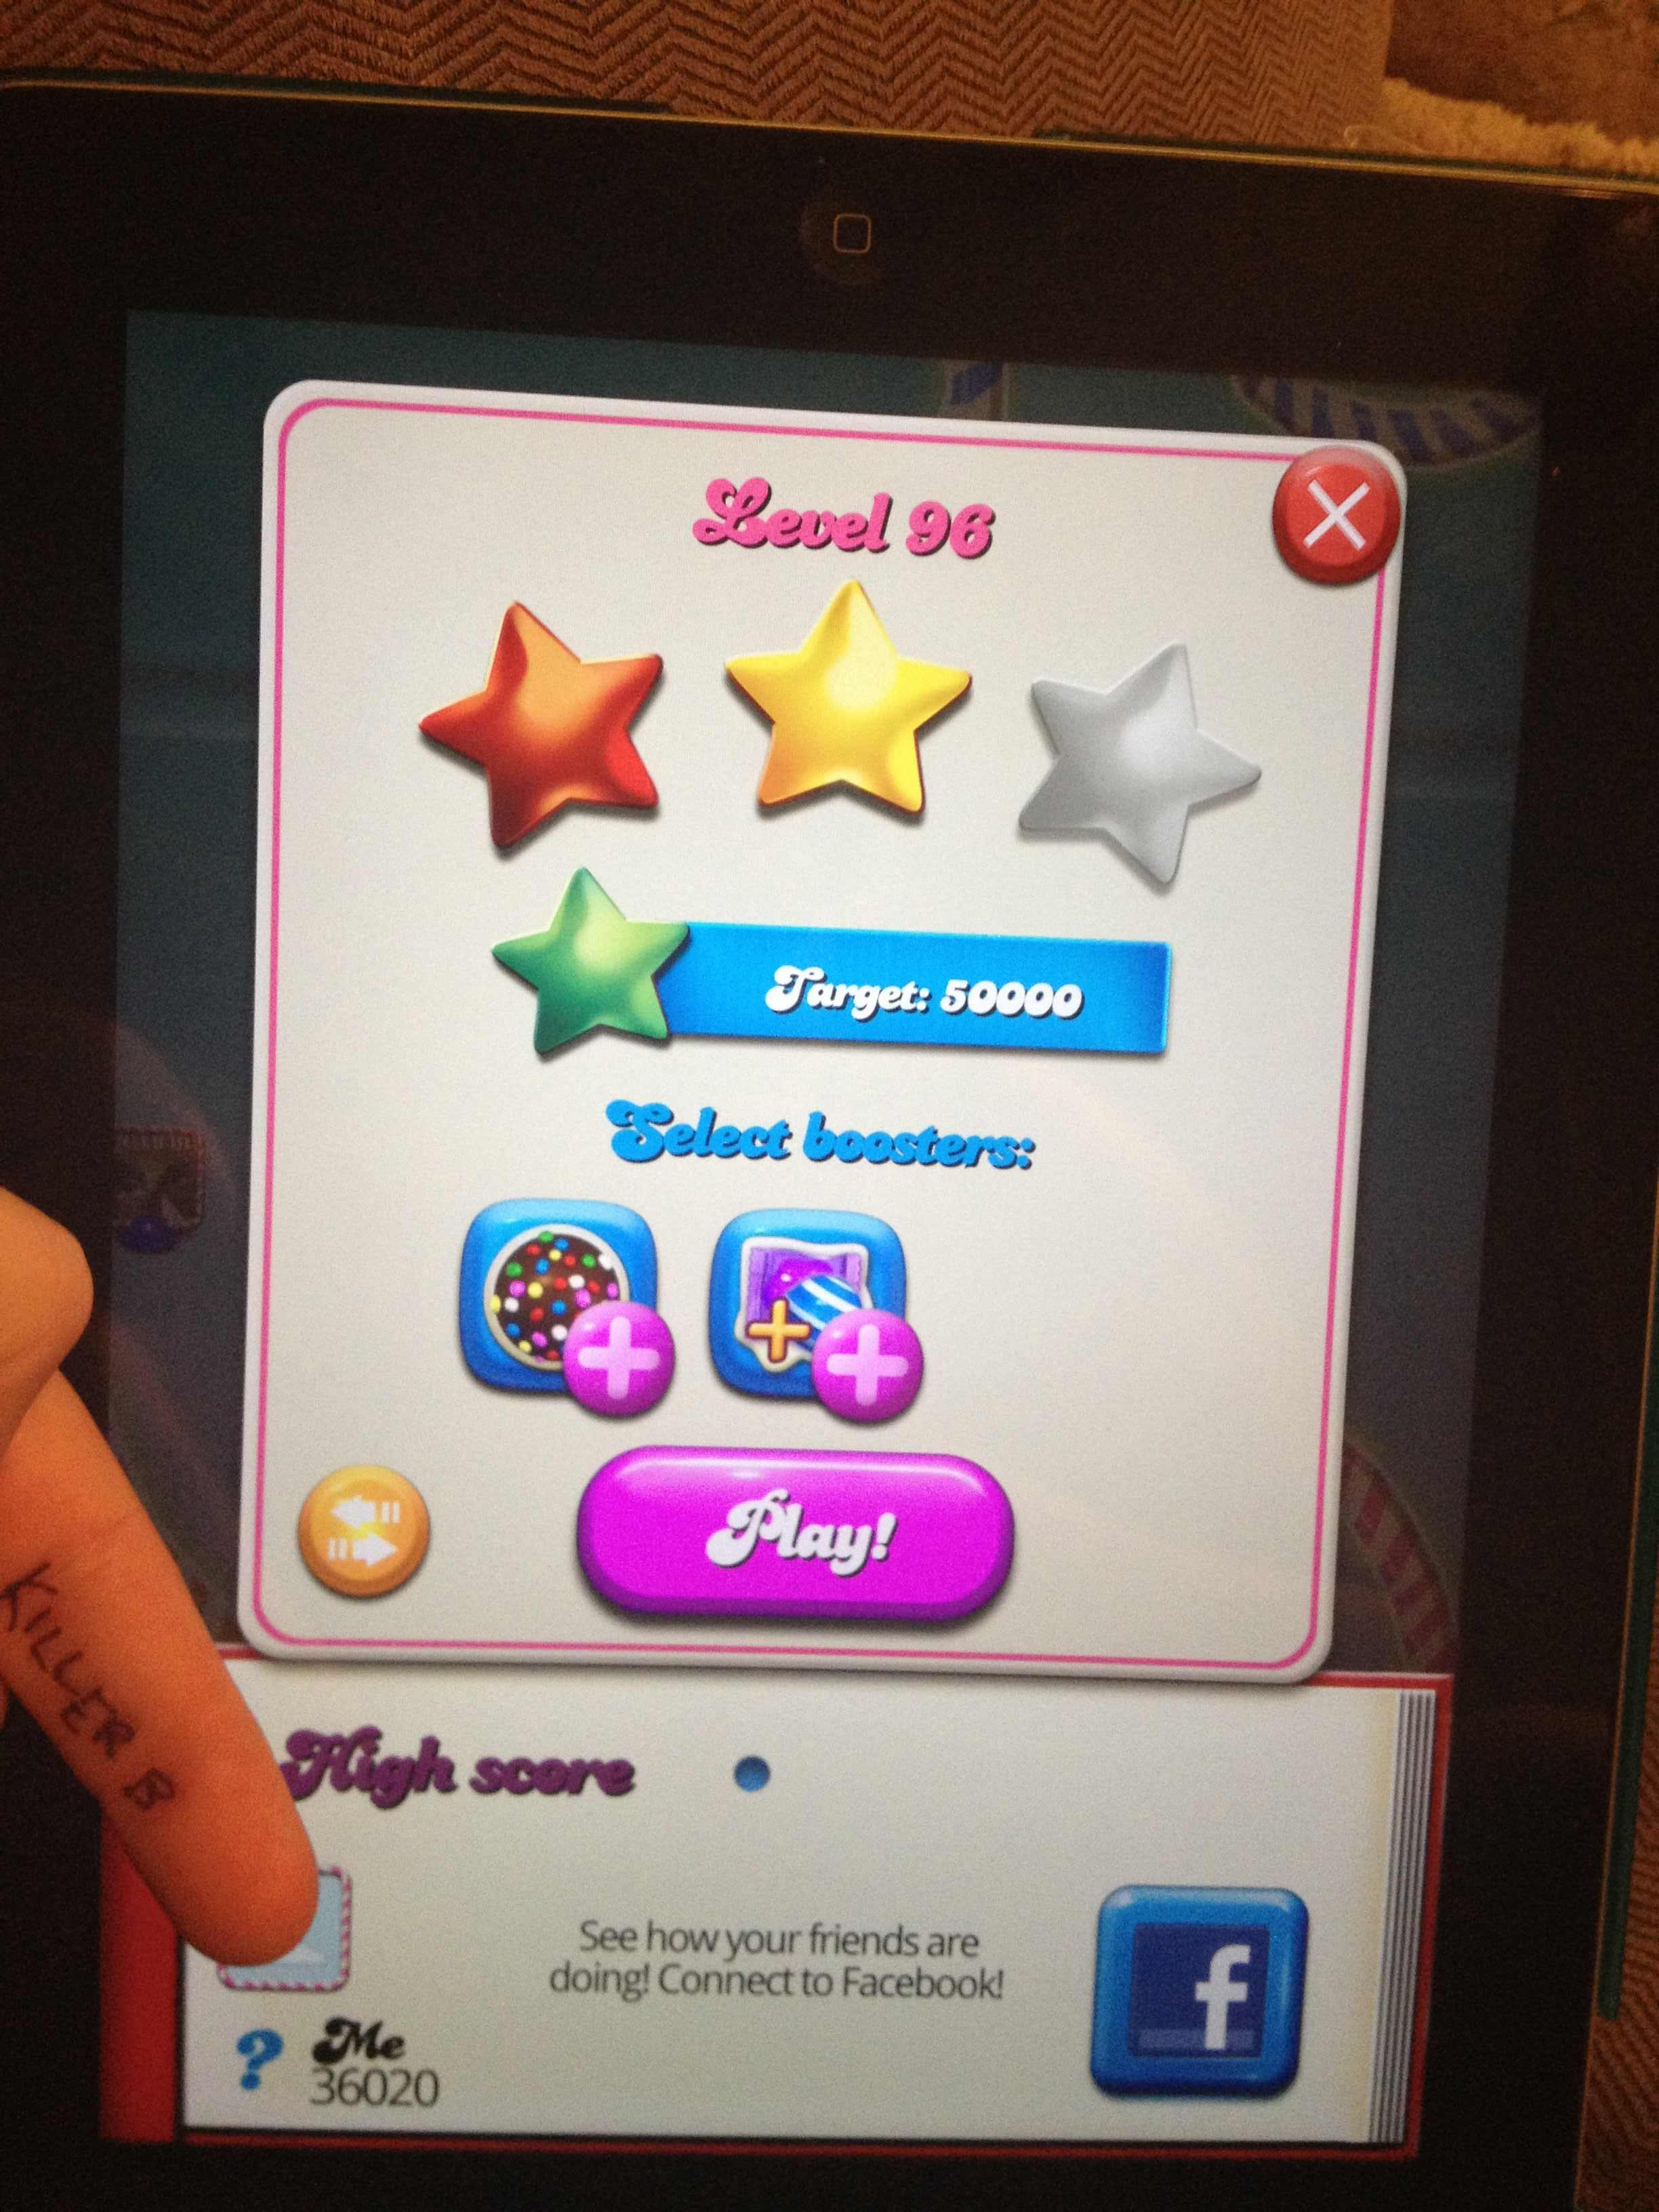 Candy Crush Saga: Level 096 36,020 points